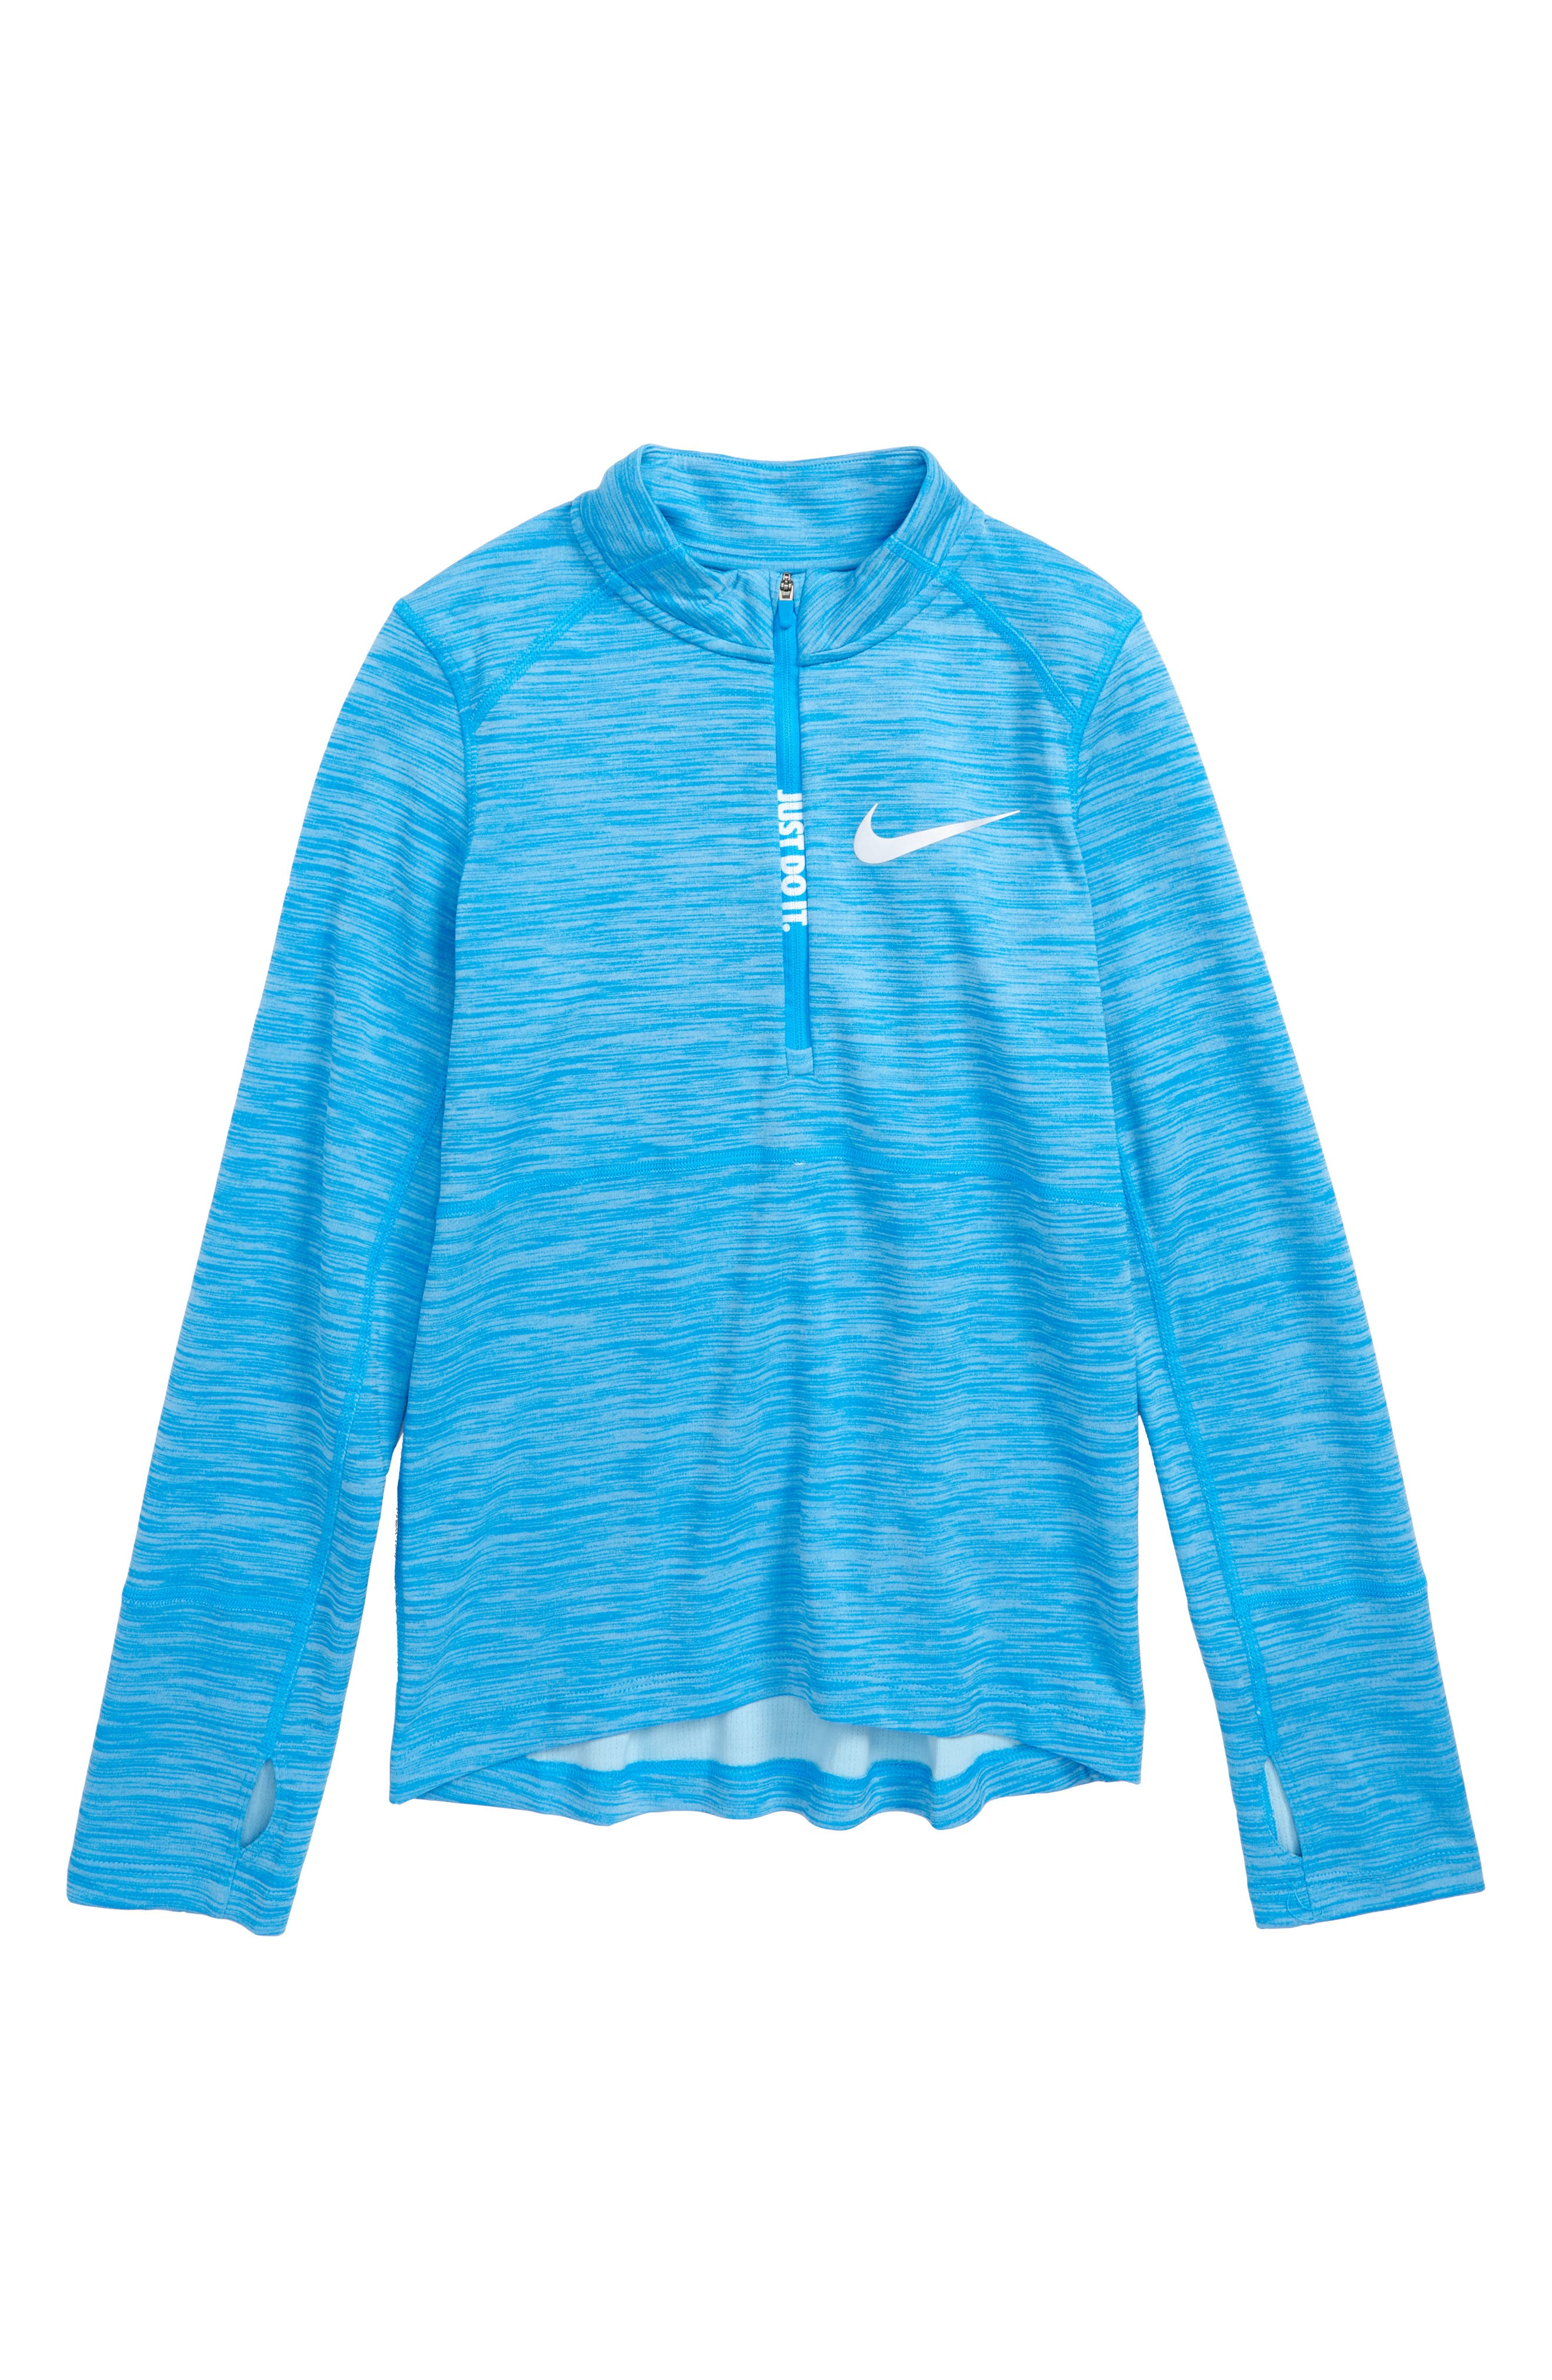 Dry Pacer Half Zip Pullover,                             Main thumbnail 1, color,                             BLUE HERO/ BLUE CHILL